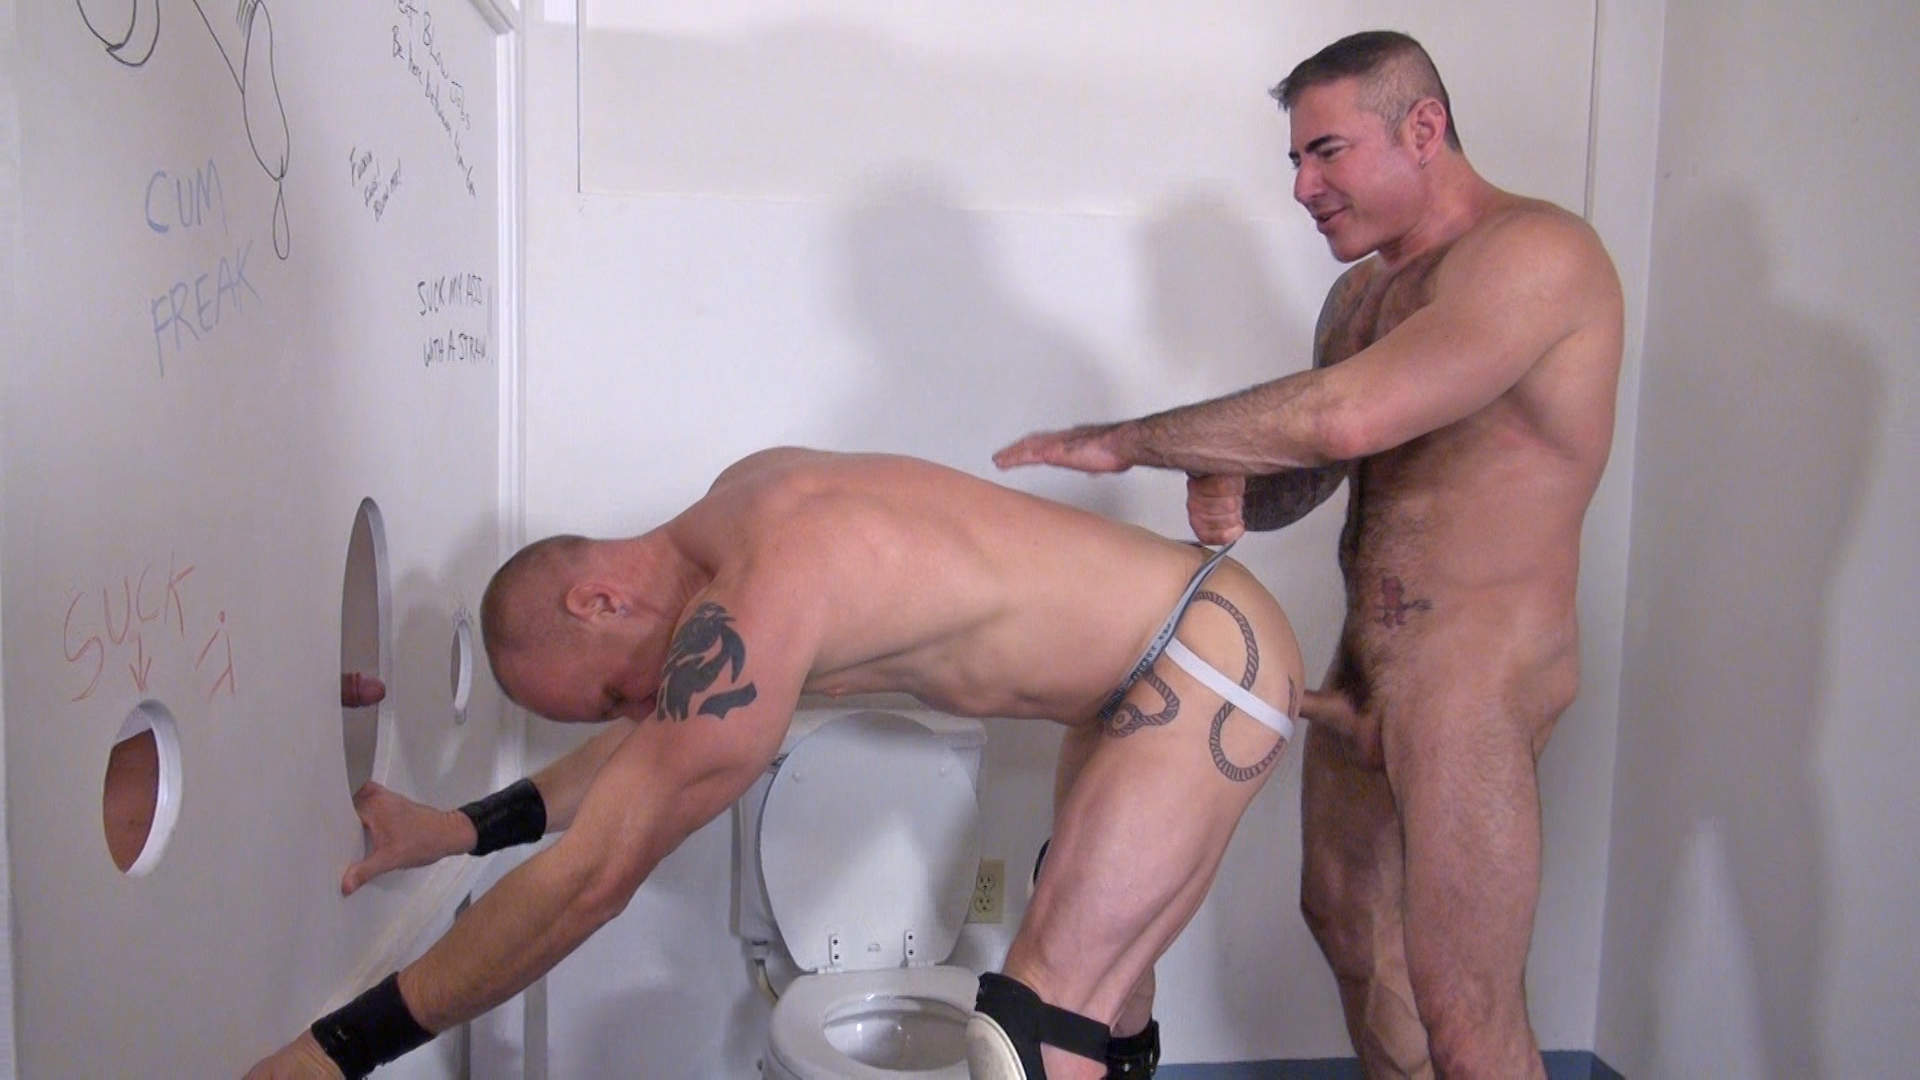 Raw and Rough Jason Mitchell Mason Garet Todd Maxwell Nick Moretti Cope and Derek Anthony Bareback Truck stop gloryhole sex Amateur Gay Porn 04 Amateur Trucker Sex At A Gloryhole With Piss, Cum and Bareback Action